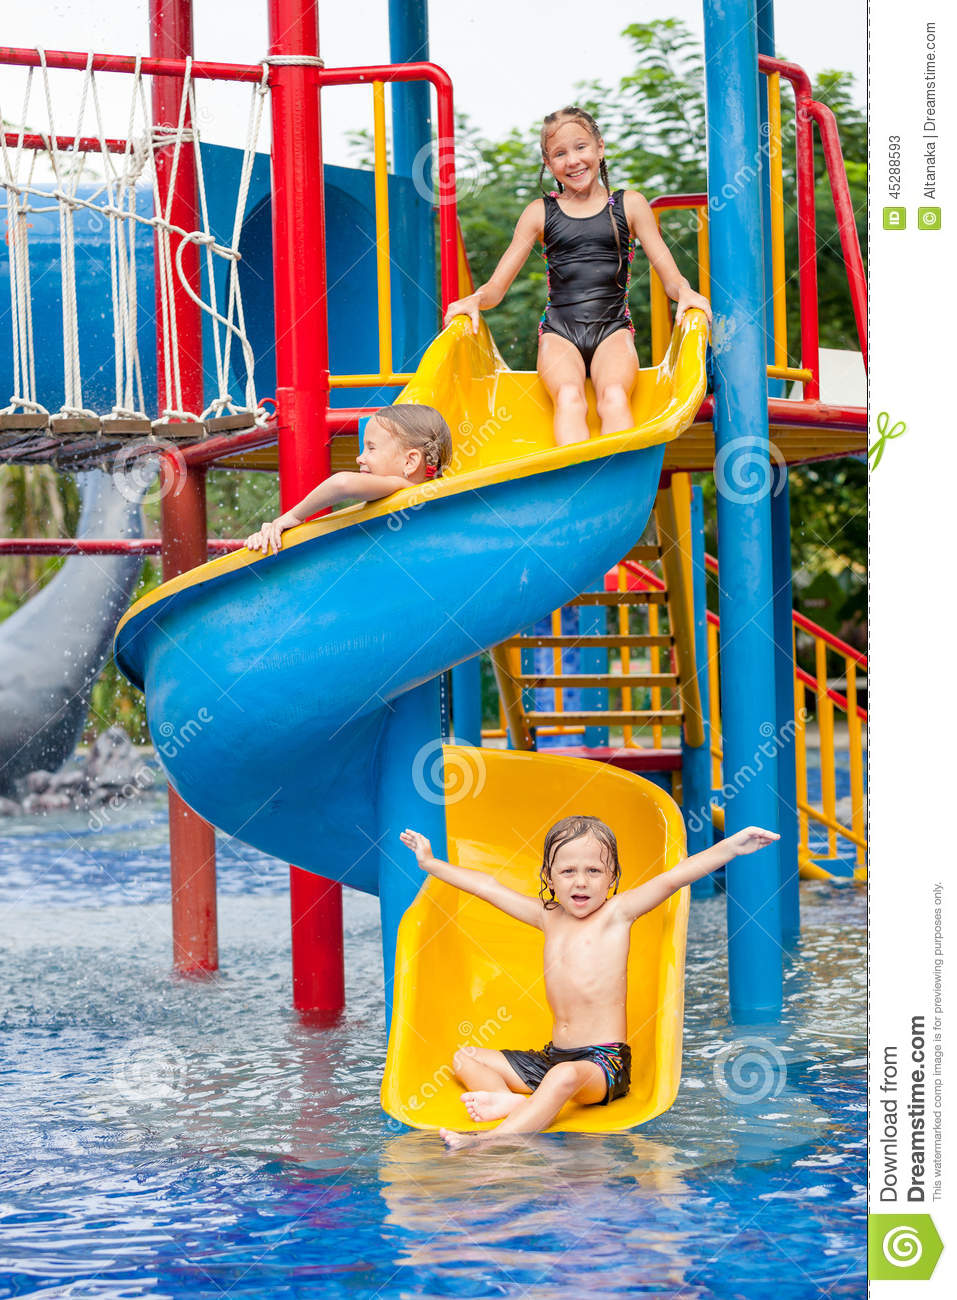 Above Ground Pools, Kiddie Pools and Baby Pool at Walmart Big Lots Swimming Pools & More Pools Compare the best prices at Big Lots, Costco, Amazon, eBay, KMart, Walmart, Target, Lowes, Namco & More.